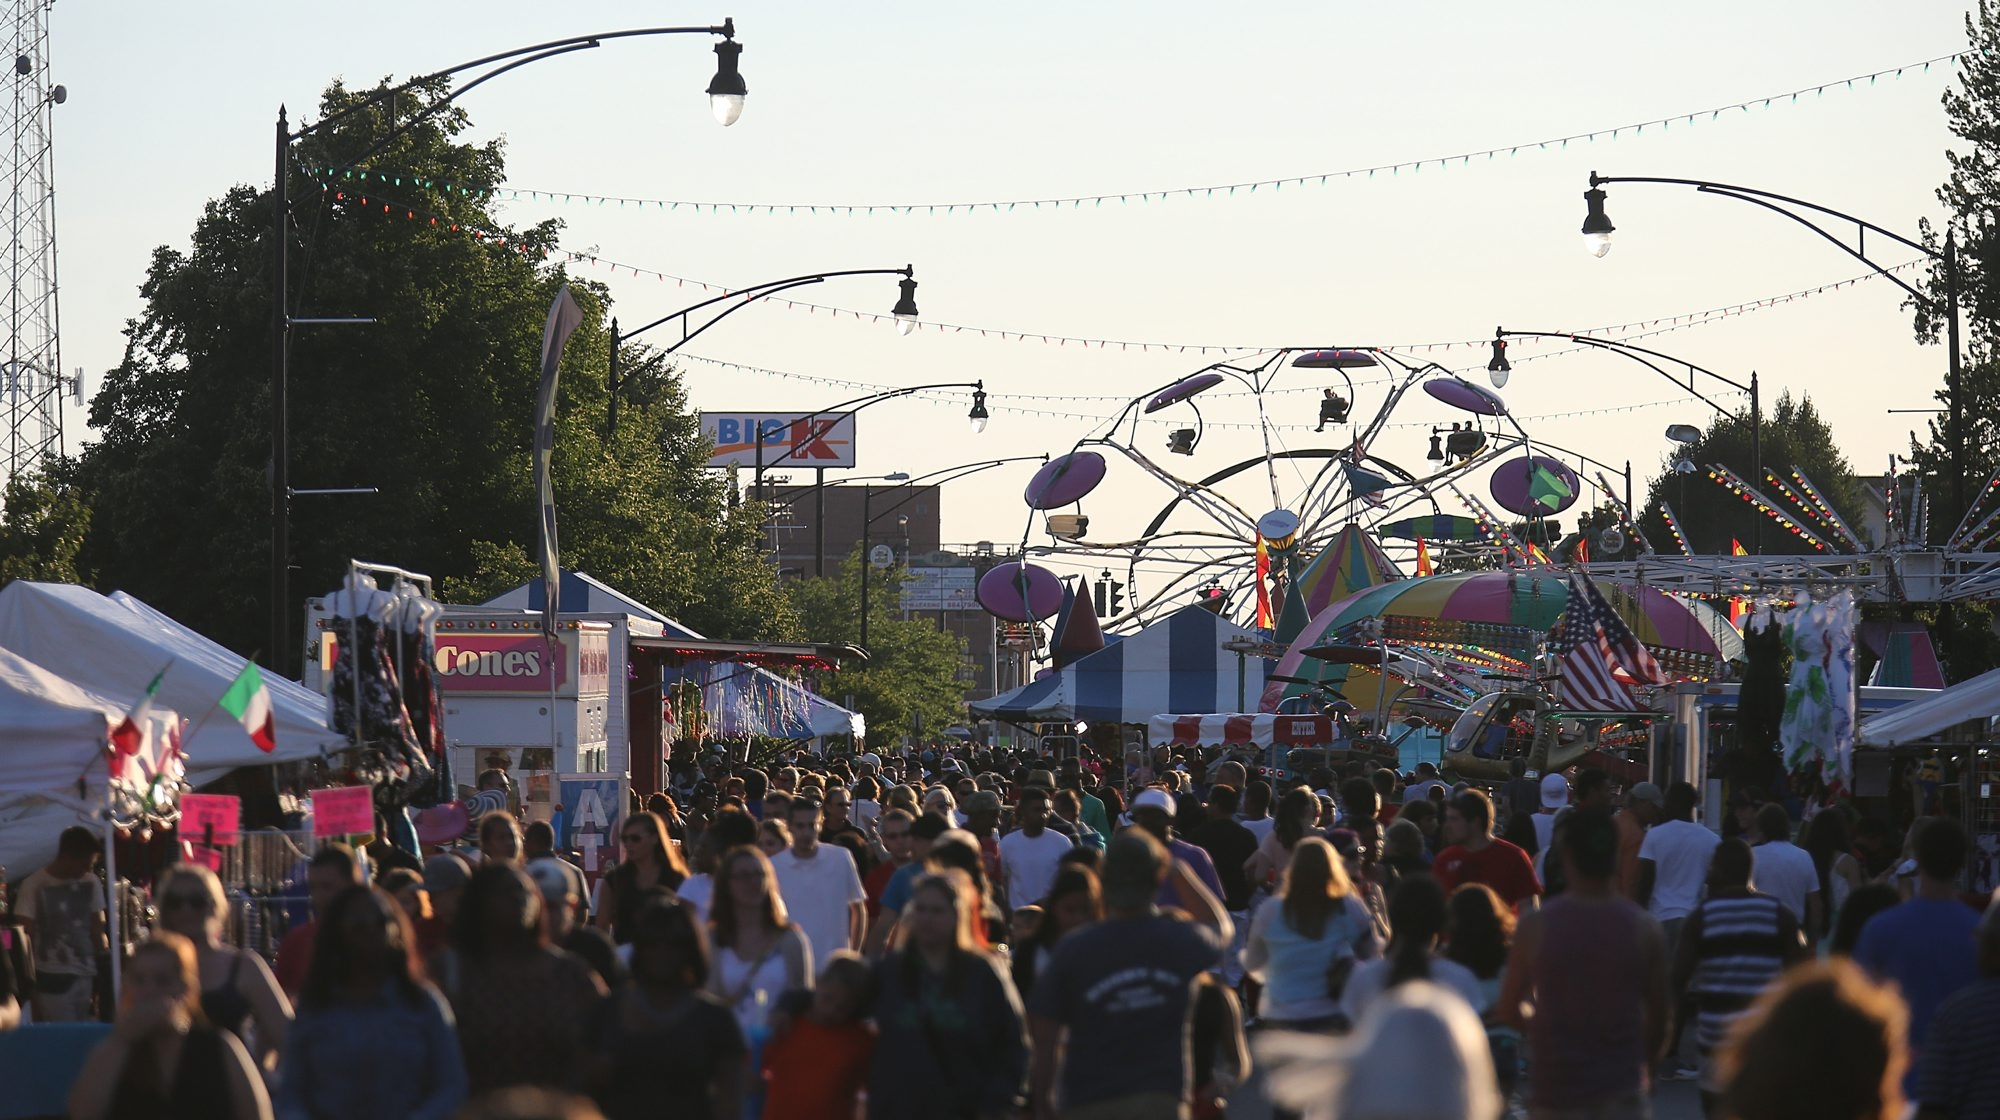 Hertel Avenue was packed with pedestrians during last year's festival (Buffalo News file photo)